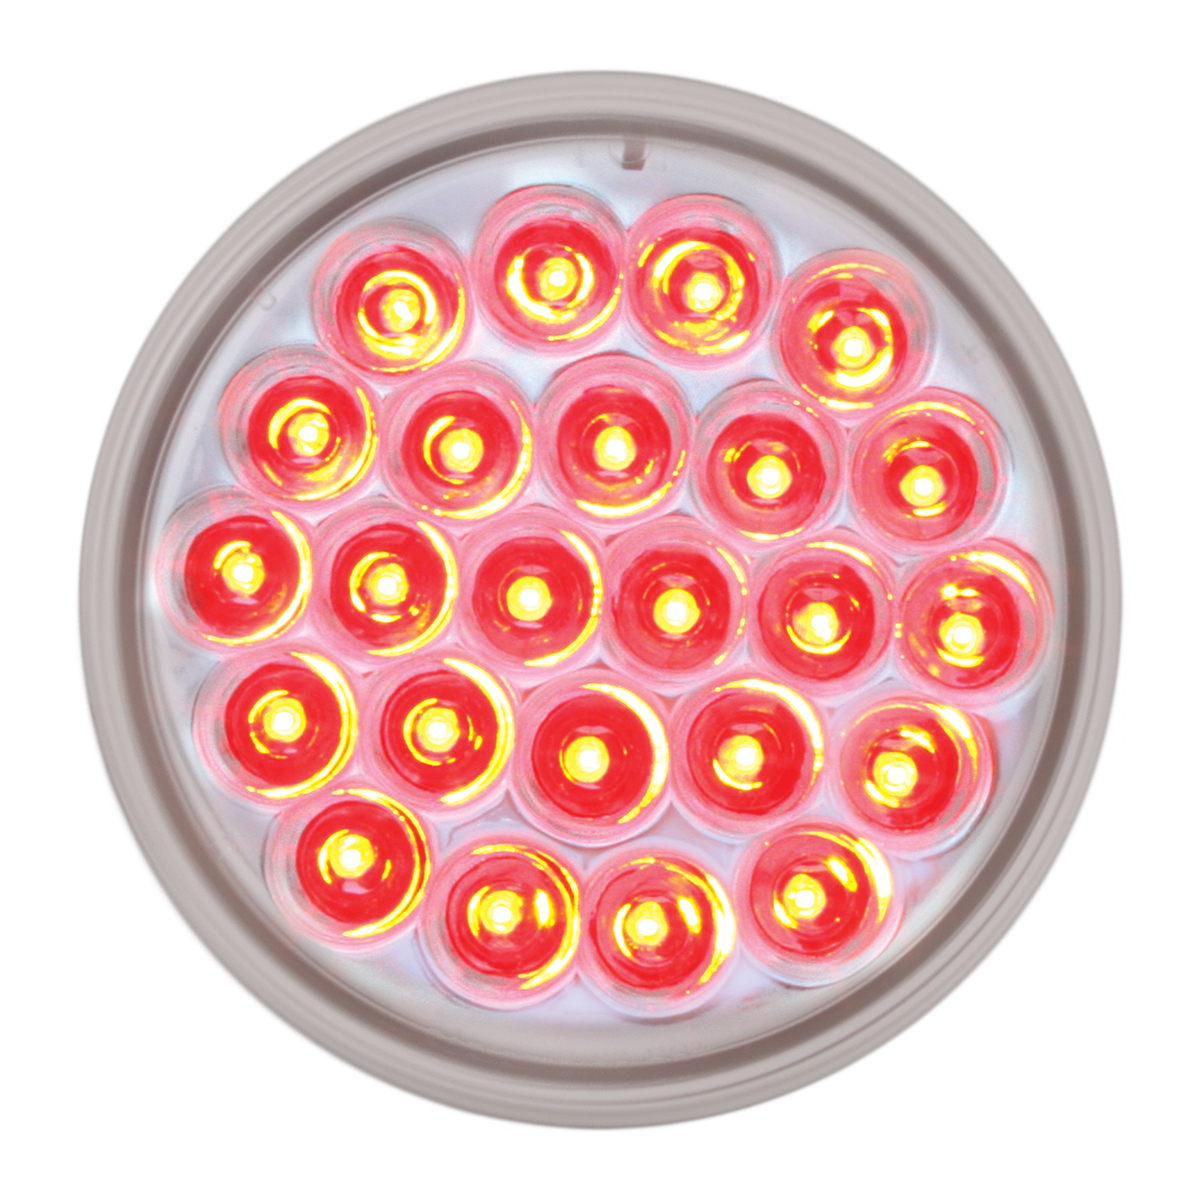 """#78274 - 4"""" Round Pearl LED Flat Red/Clear Light"""